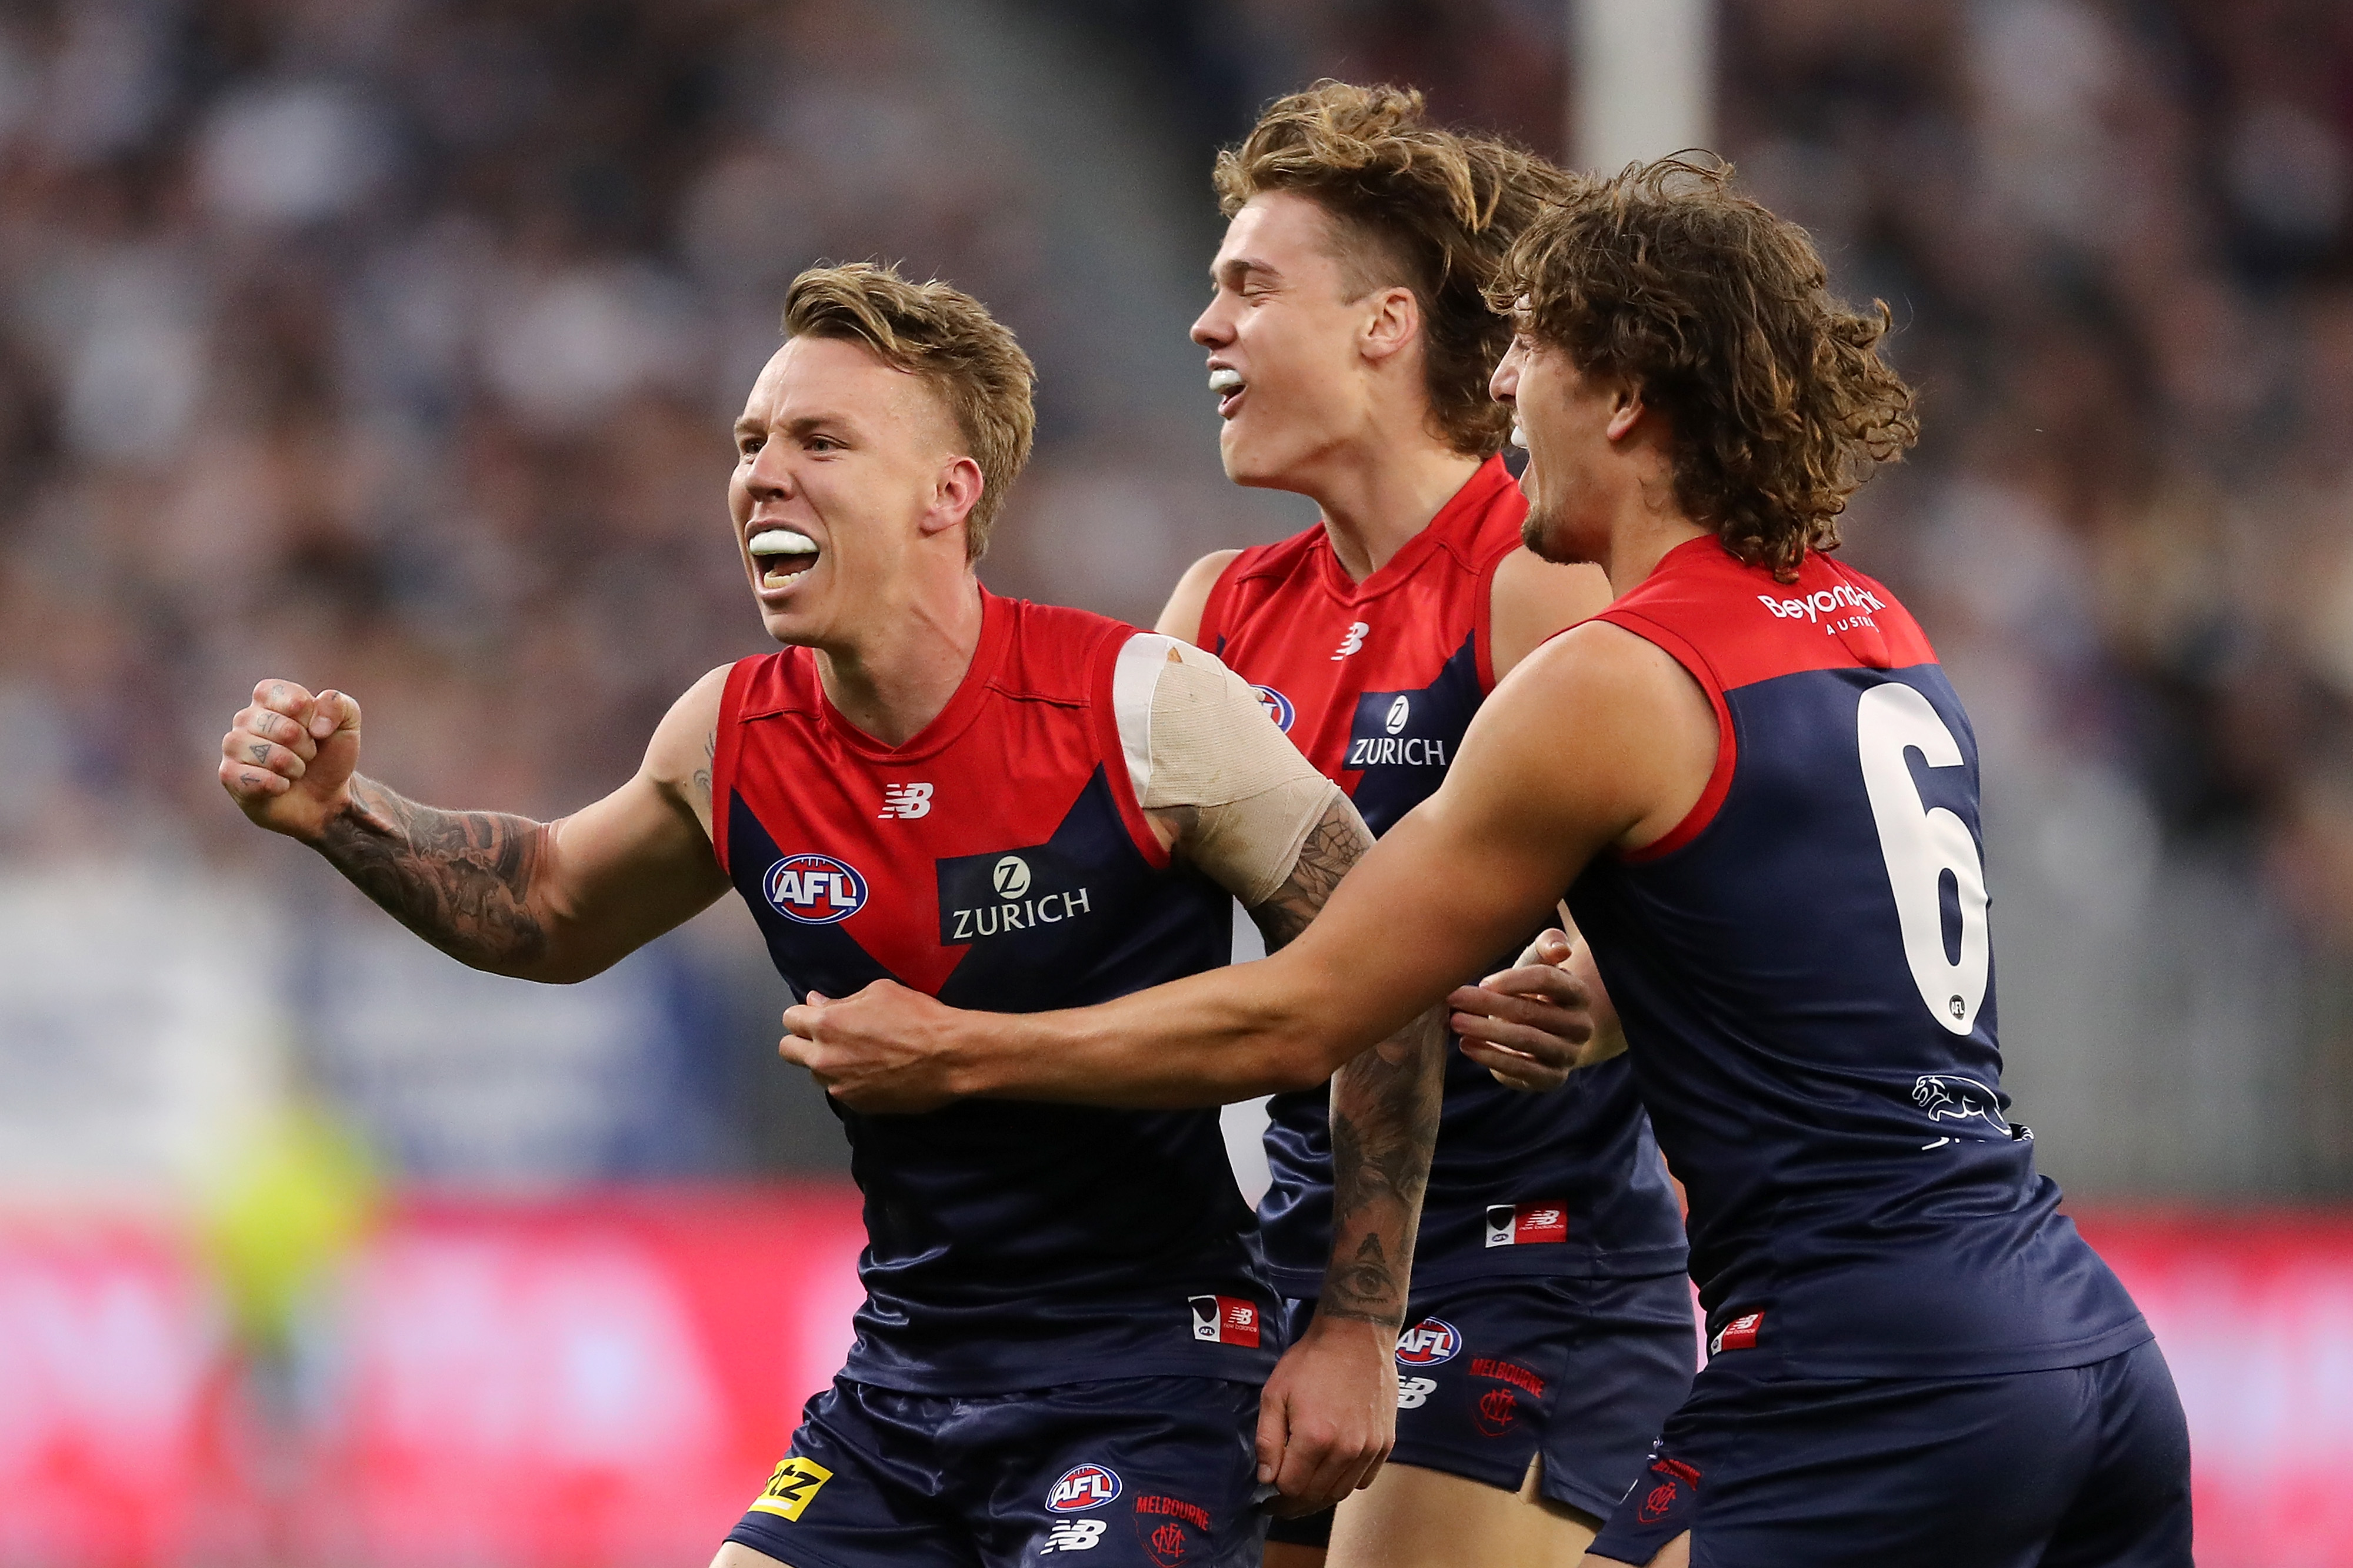 Three Melbourne AFL players embrace as they celebrate a goal.